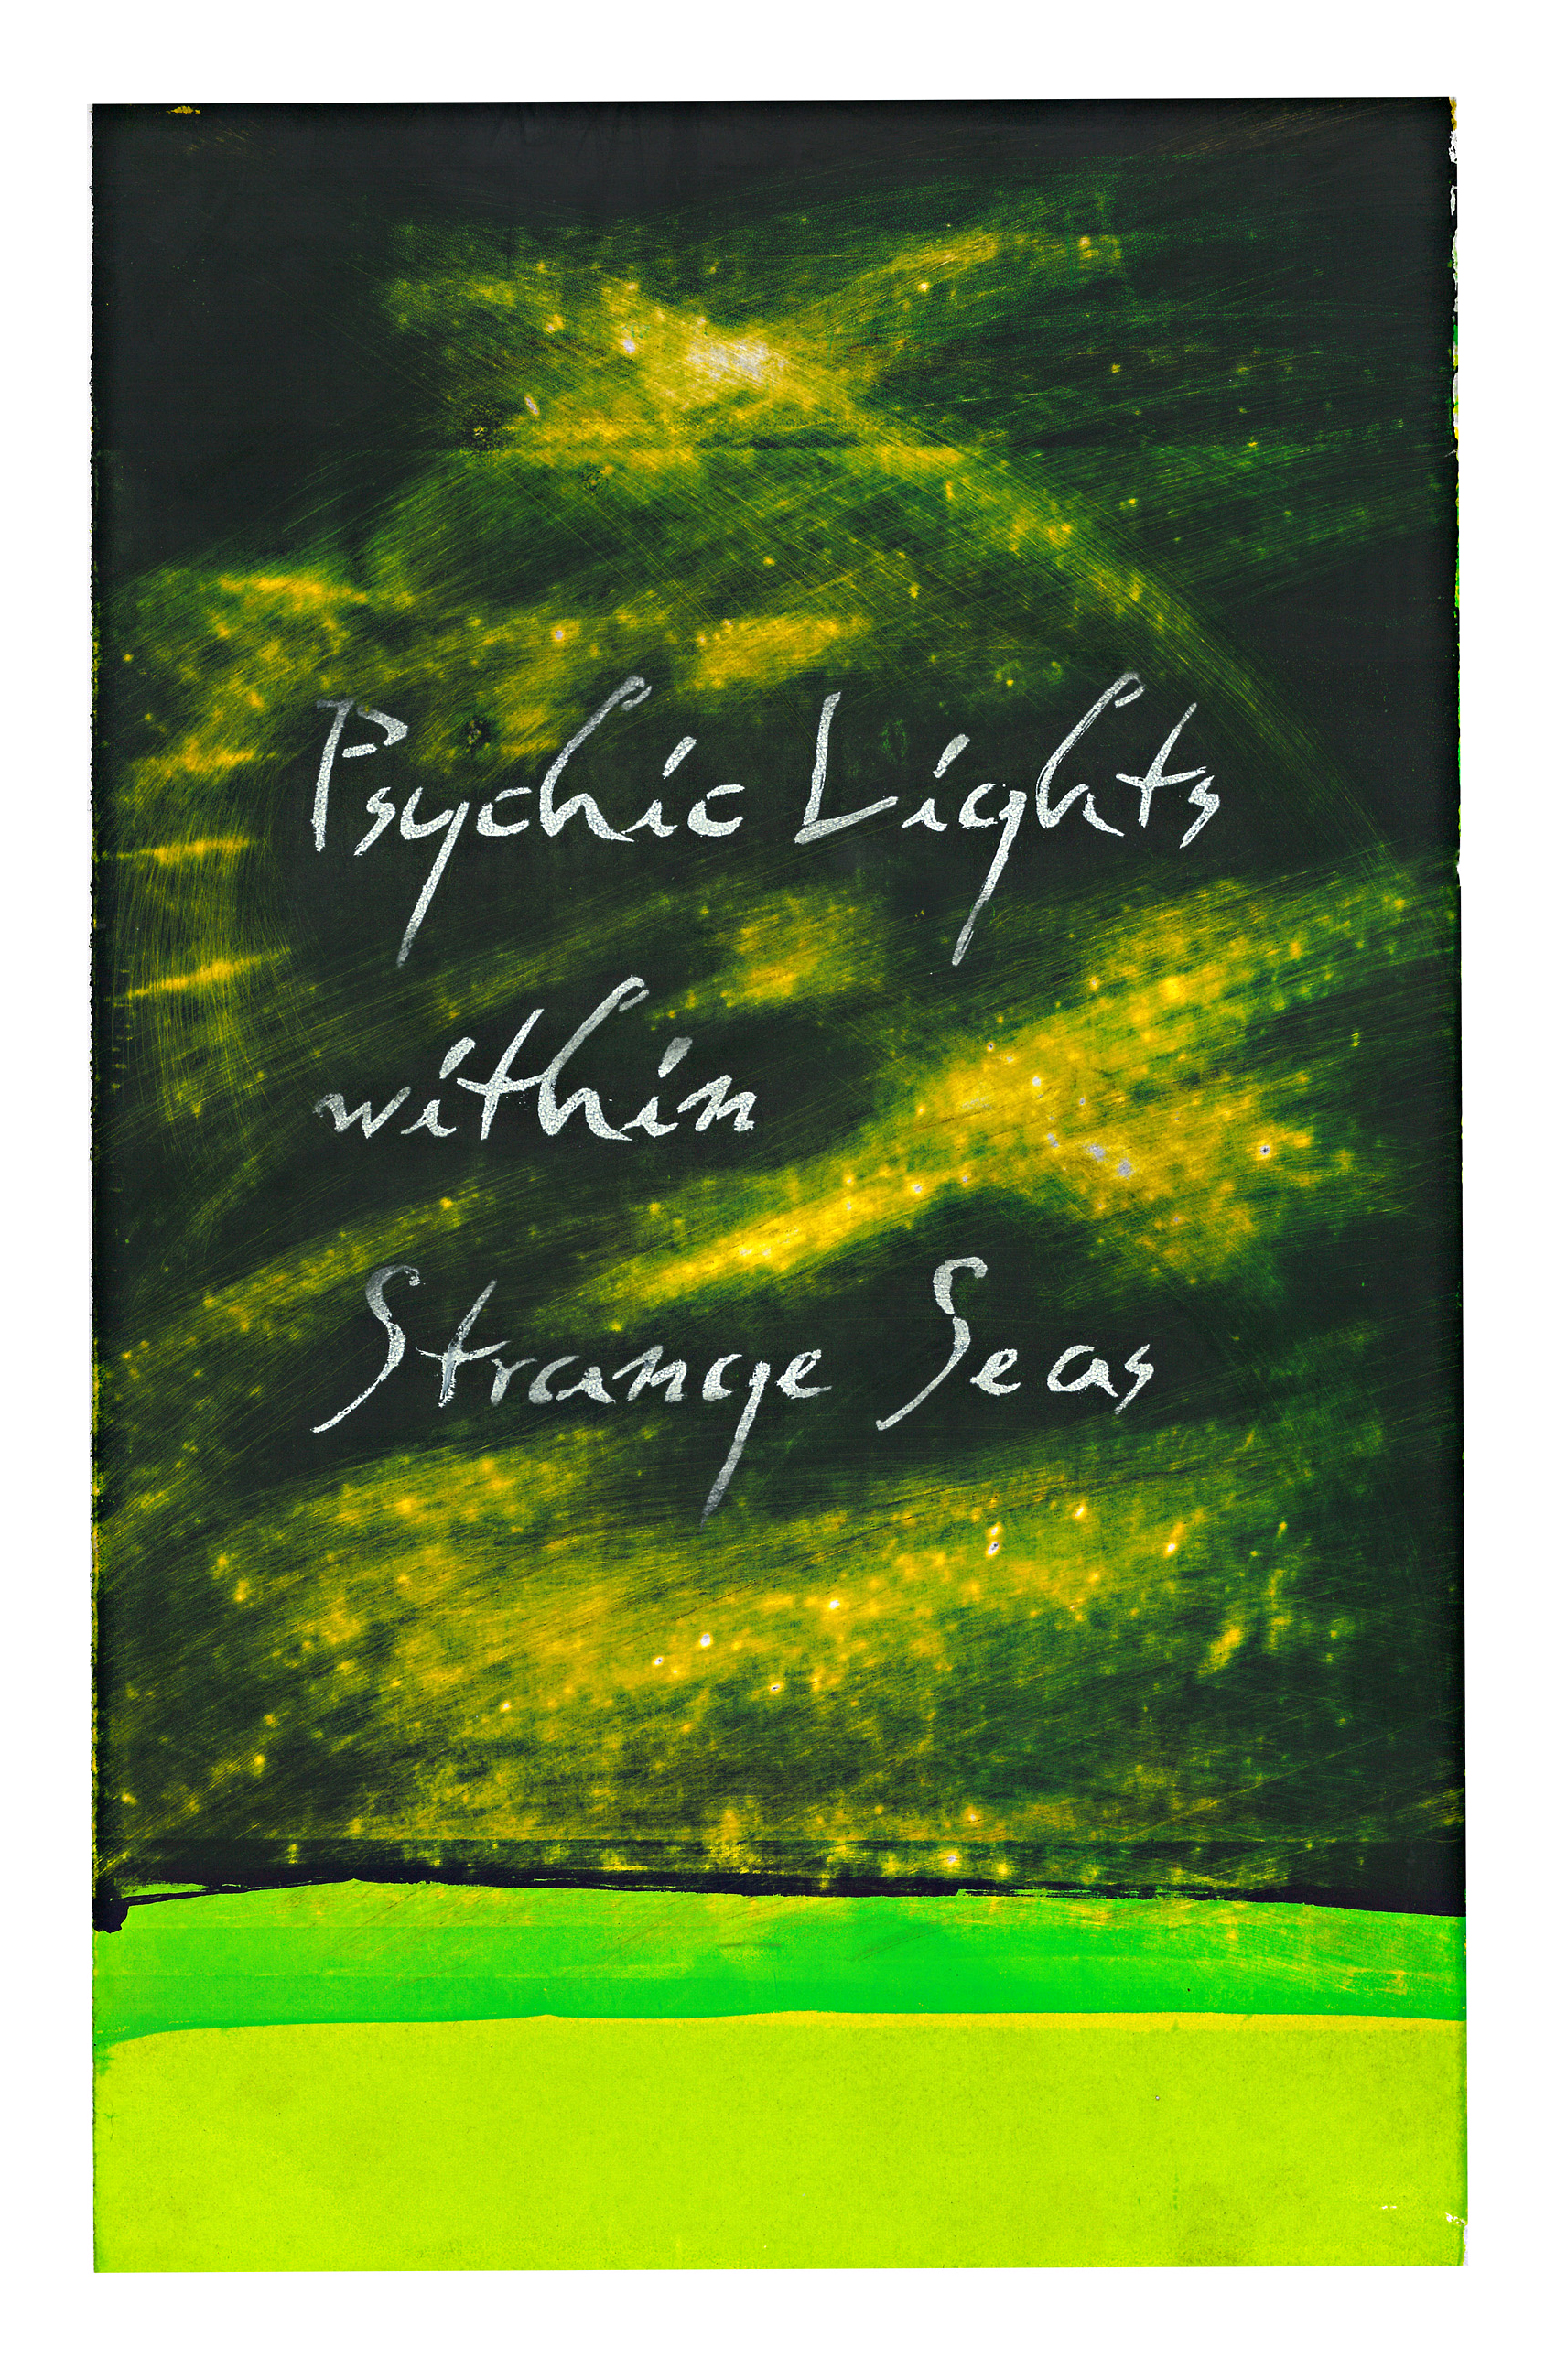 Psychic Lights within Strange Seas